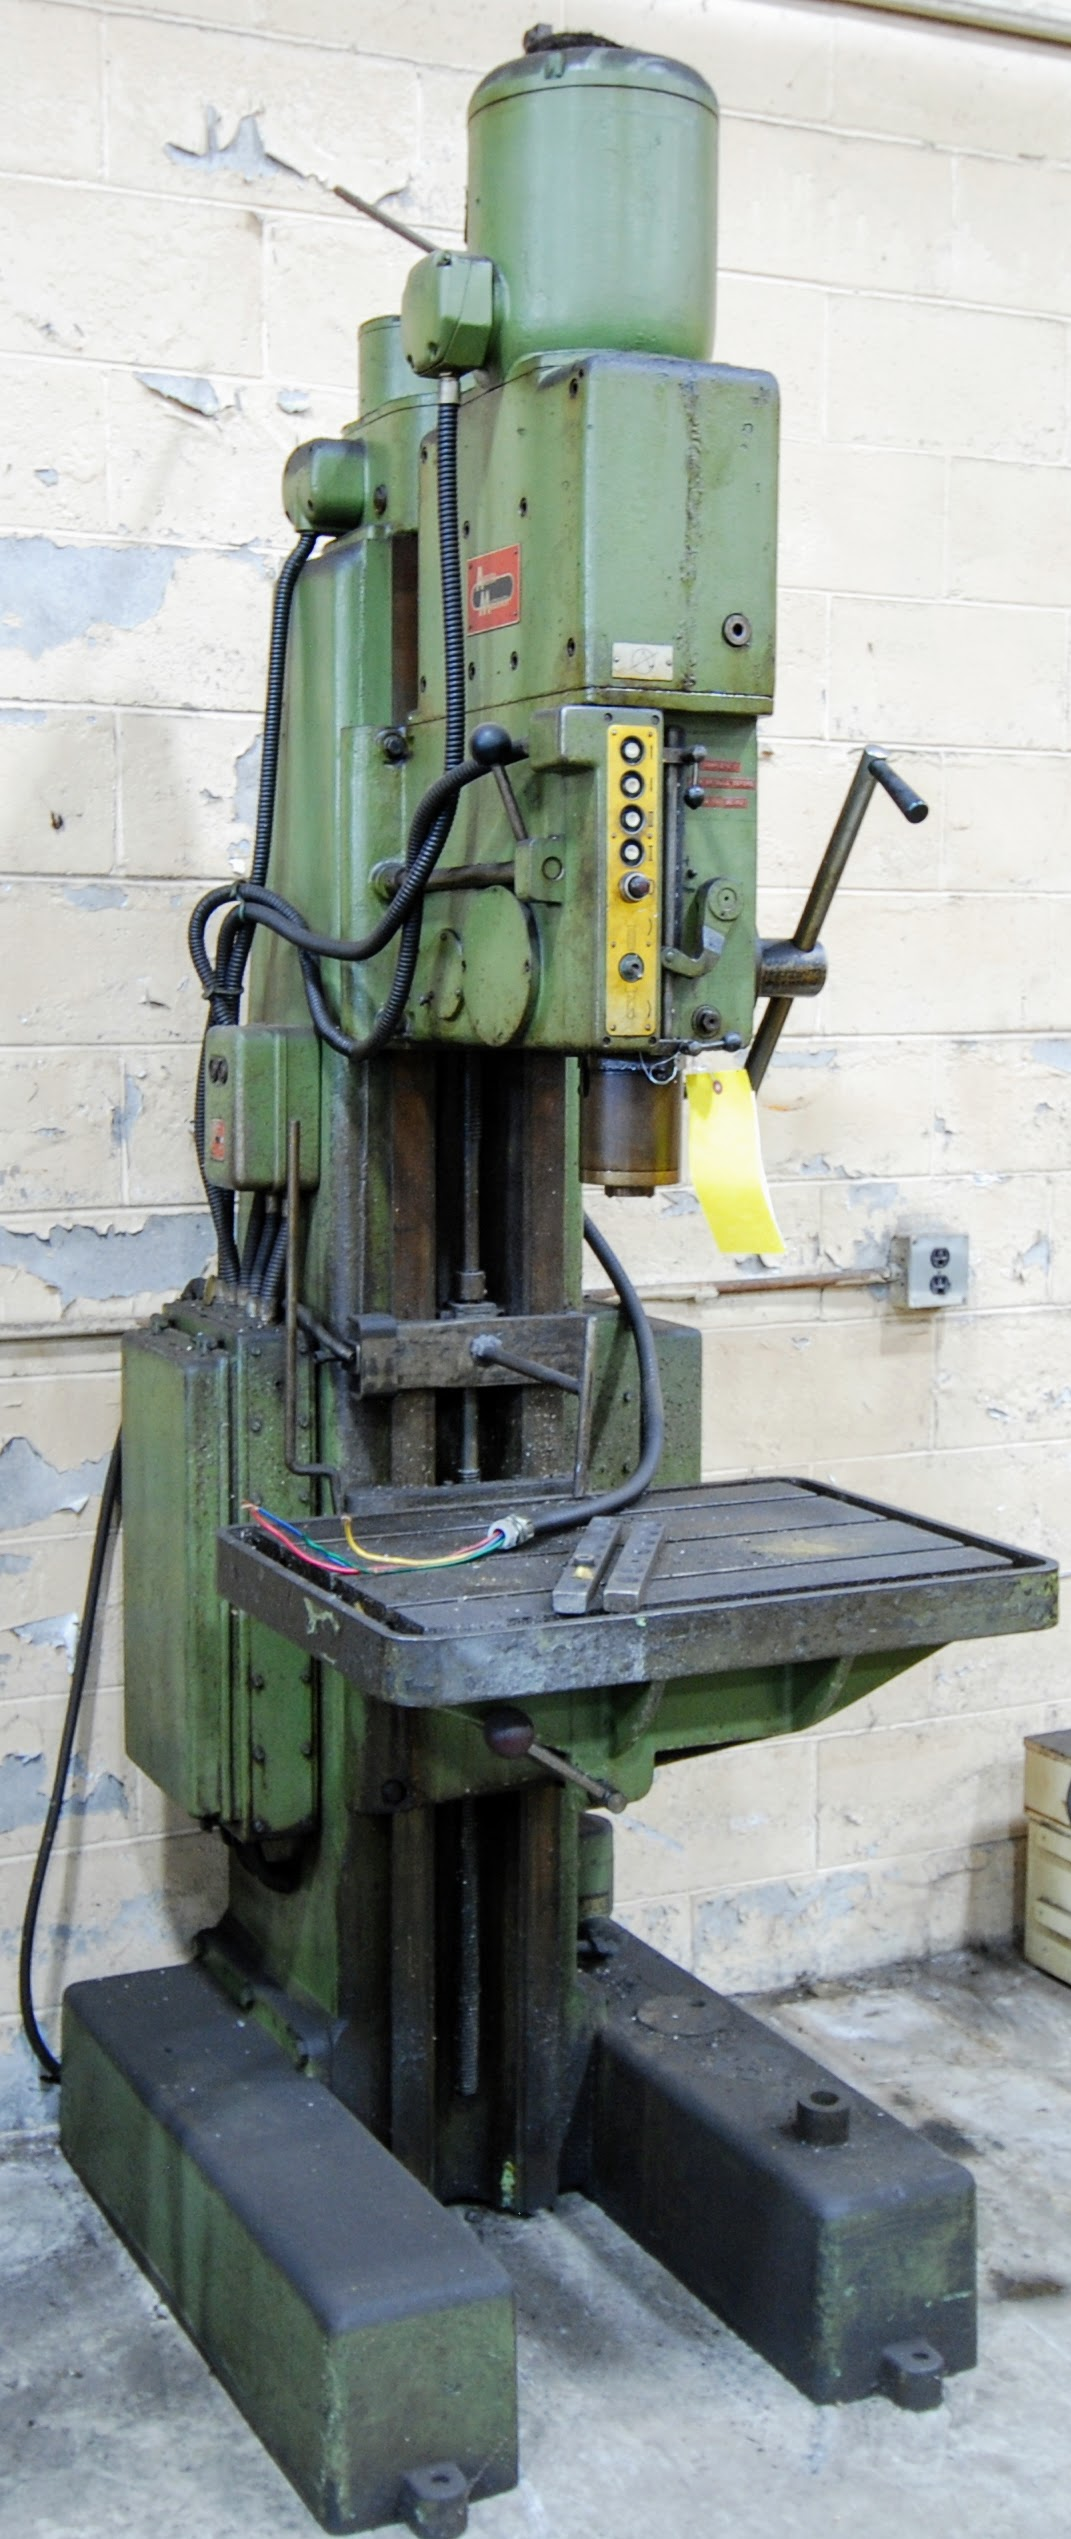 """ARBOGA MASCHINEN M3/4/7 DRILL PRESS, 1 1/4"""" BORES, 60V, 28"""" X 20"""" TABLE, 63 TO 800 RPM, S/N 16225 - Image 4 of 5"""